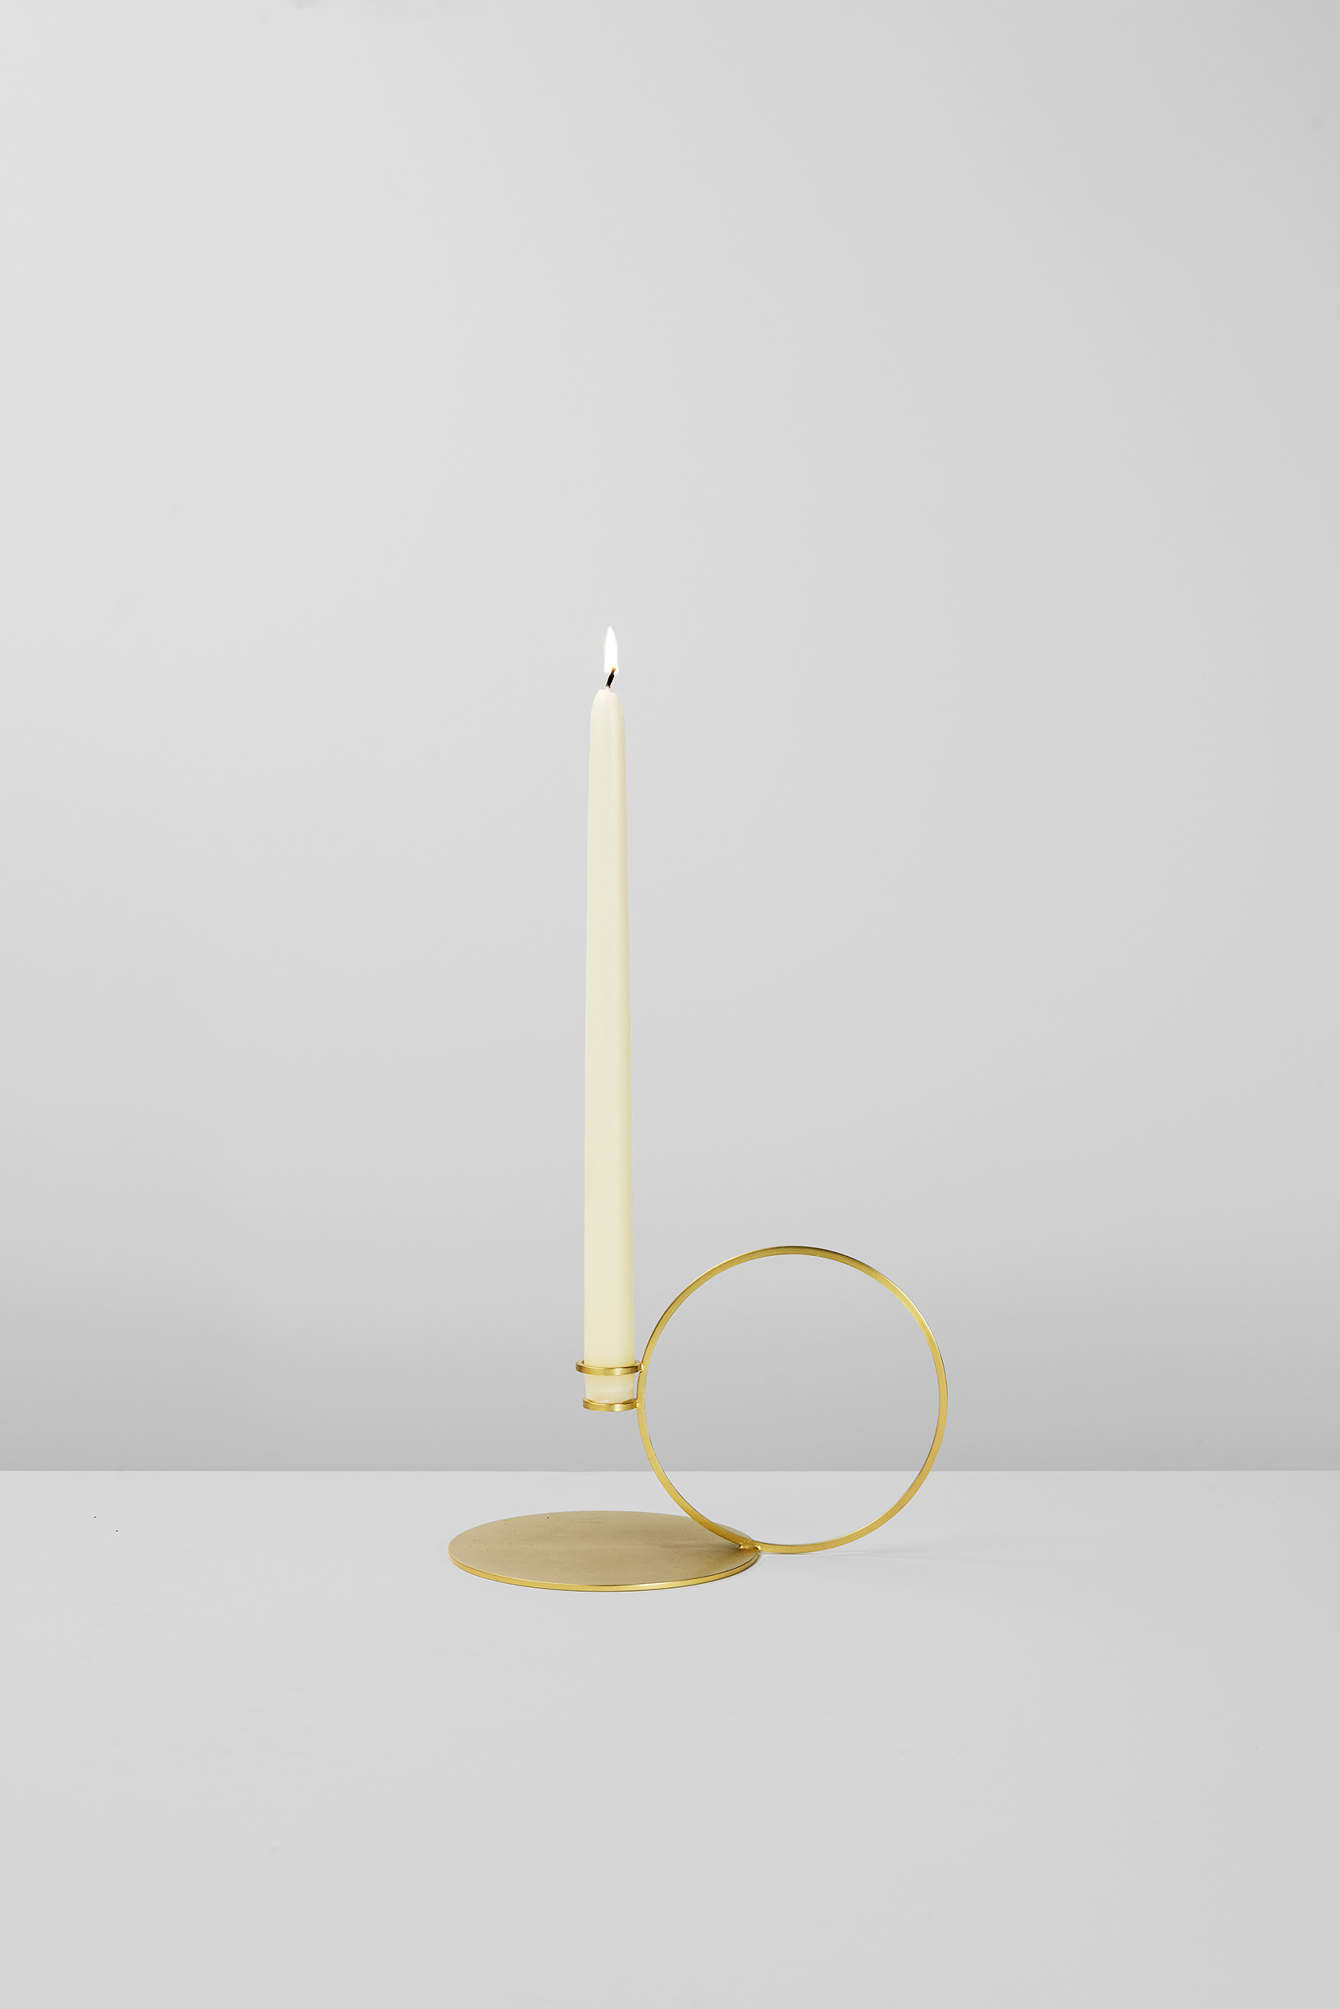 The Bulga lamp, meaning candlestick, is the second piece in the series designed by Formafantasma for Roll & Hill in Brooklyn, New York. Photo c/o Roll & Hill.